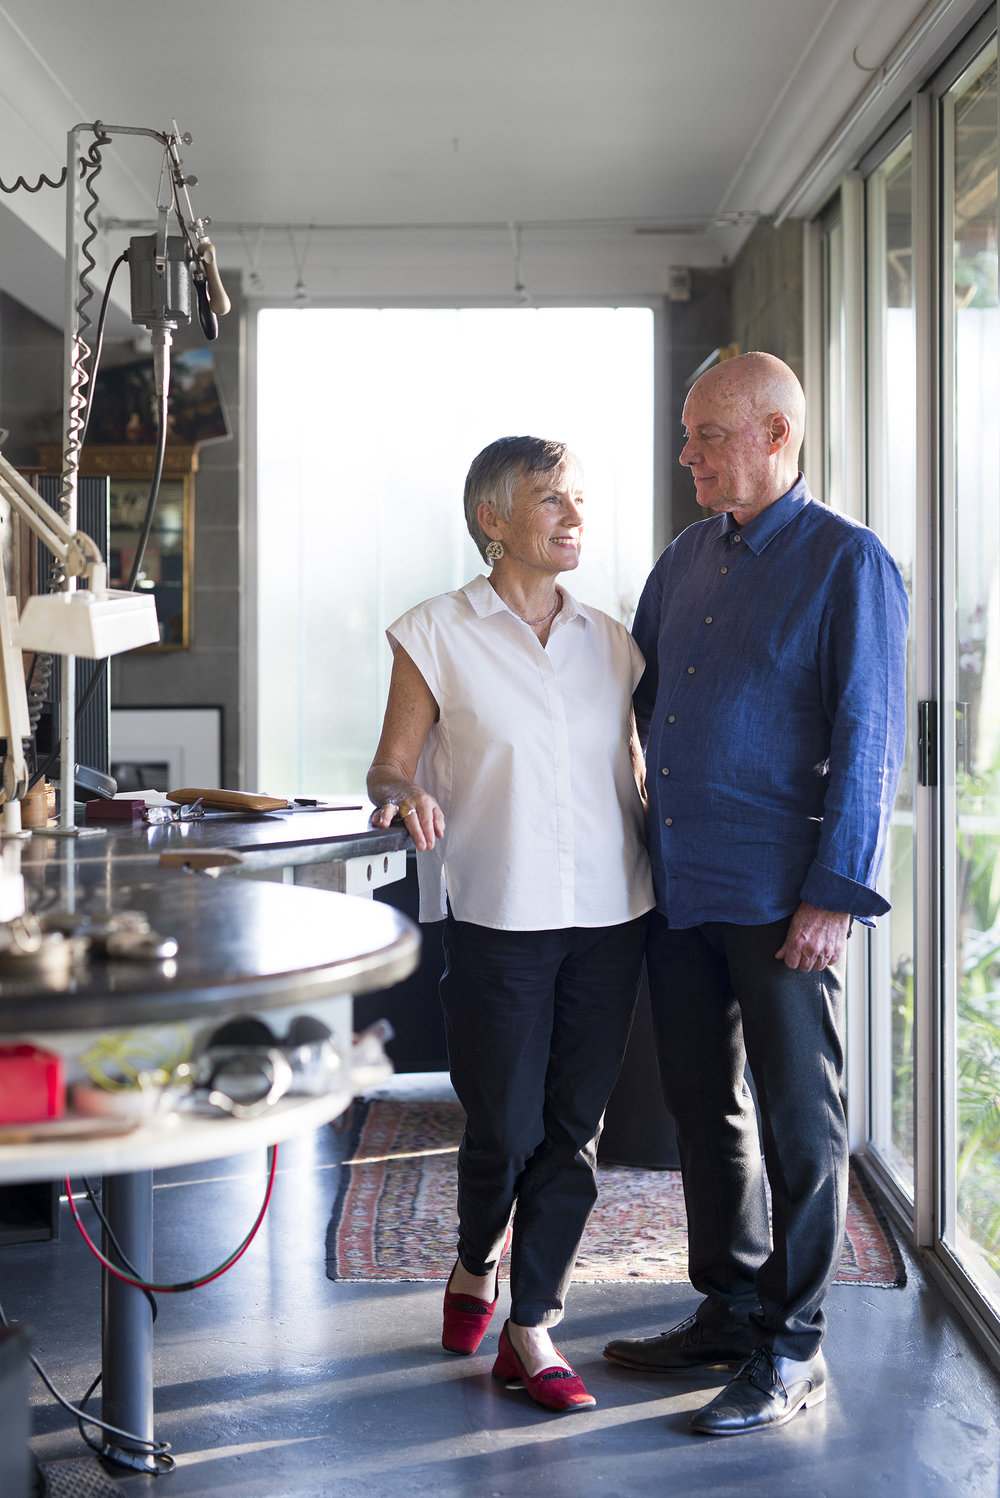 Barbara Heath (Barb) and Malcolm Enright (Mal) in their Jeweller to the Lost studio, the built-in lower level of their home, which houses a work desk, display area, workshop floor, and archive areas for Mal's ephemera and other collections.